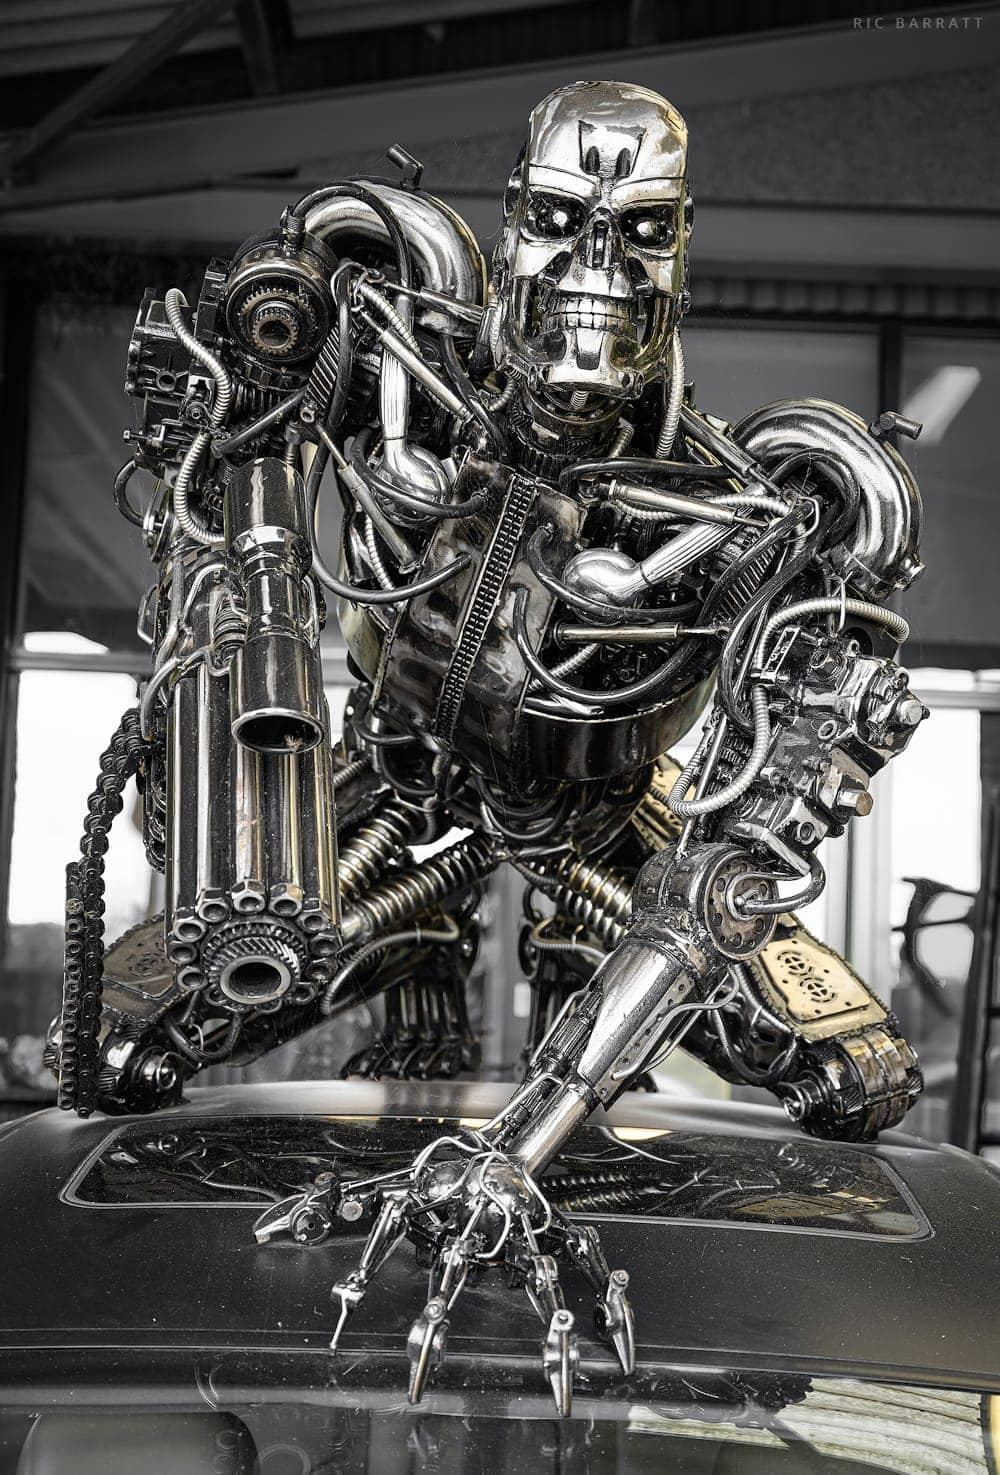 Crouching metal sculpture of Terminator robot made from scrap metal alloy elements.